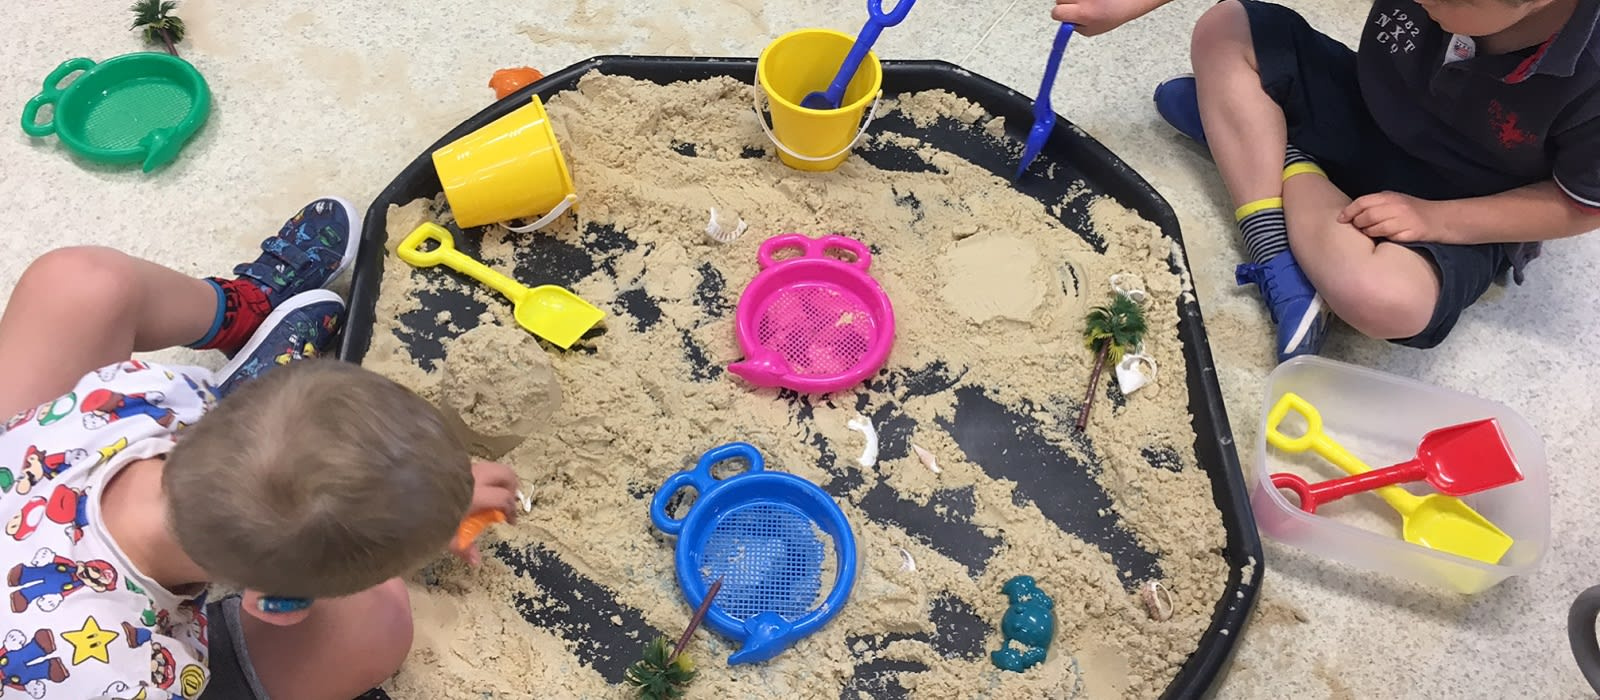 Children playing at a sensory beach-themed outreach session